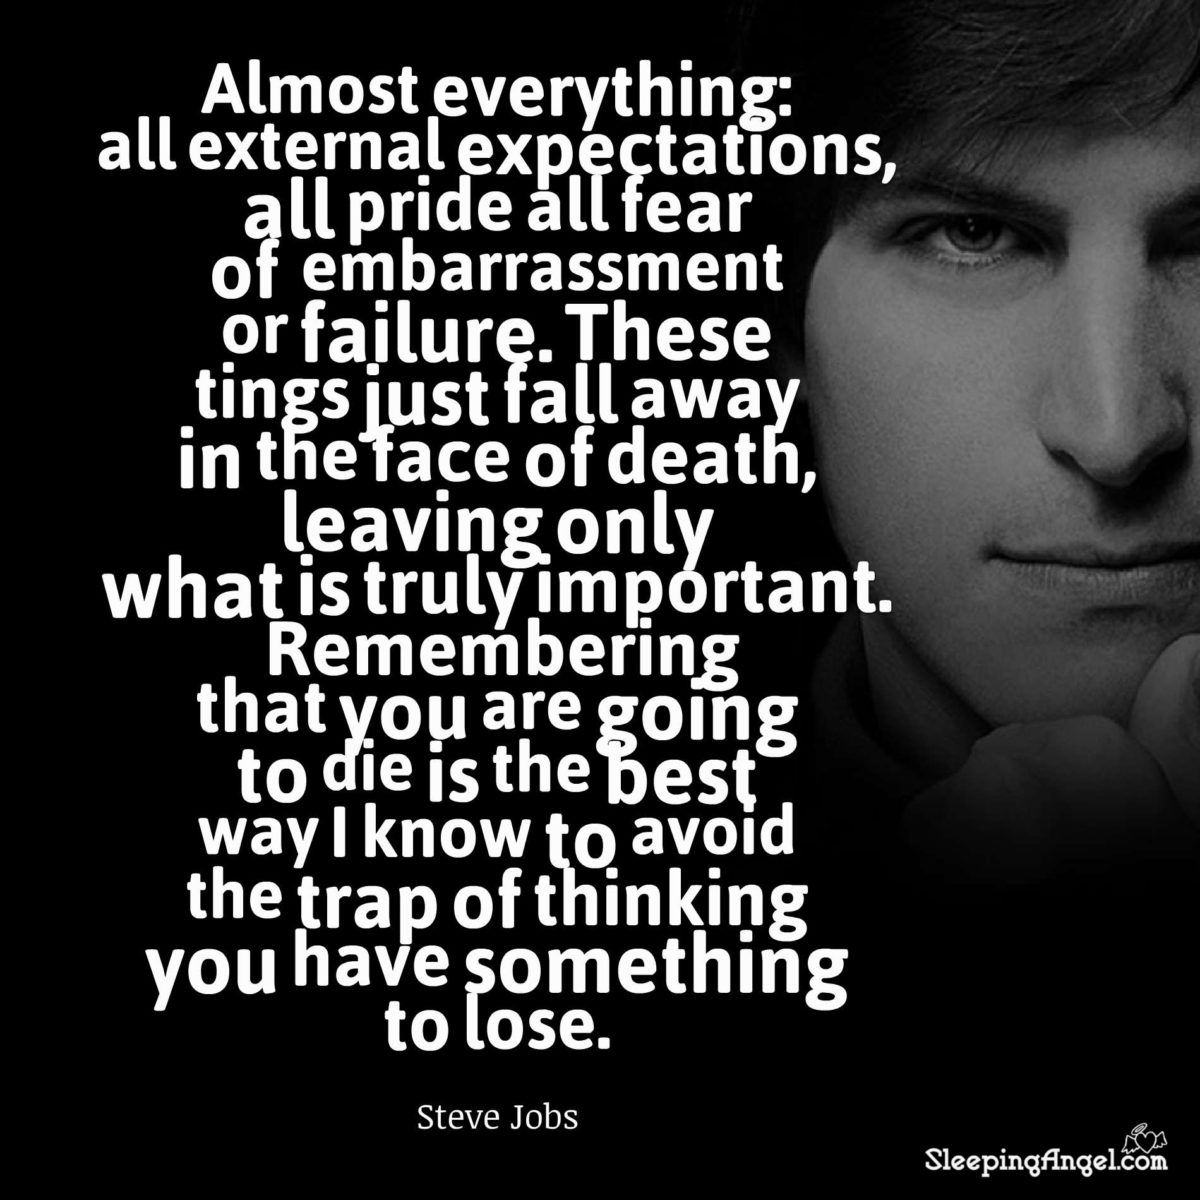 Pin By Silvia Corradin On Inspirational Quotes Steve Jobs Quotes Time Heals All Wounds Inspirational Quotes